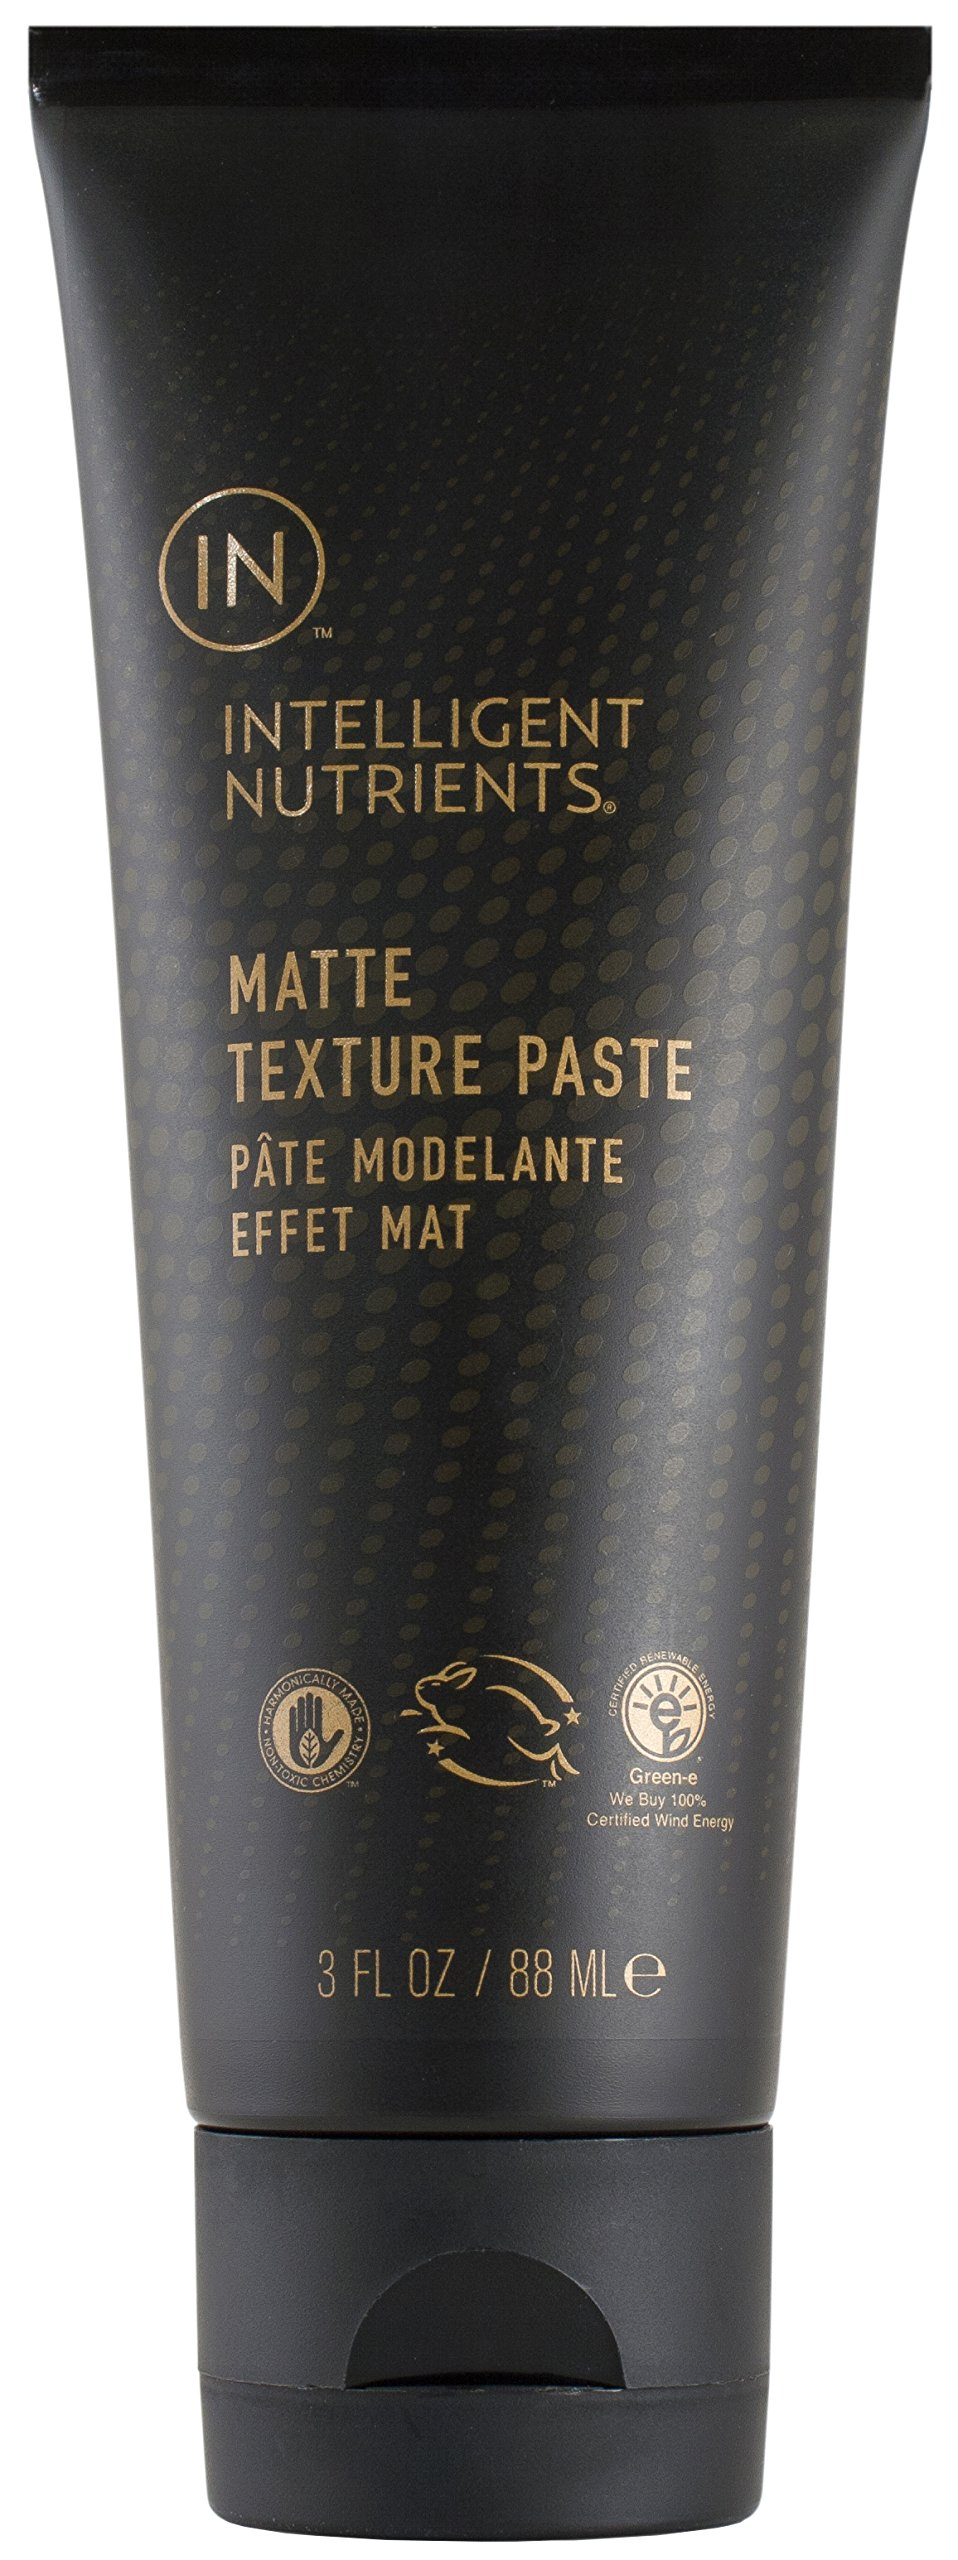 Intelligent Nutrients Matte Texture Paste - Styling Pomade with Matte Finish (3 oz) by Intelligent Nutrients